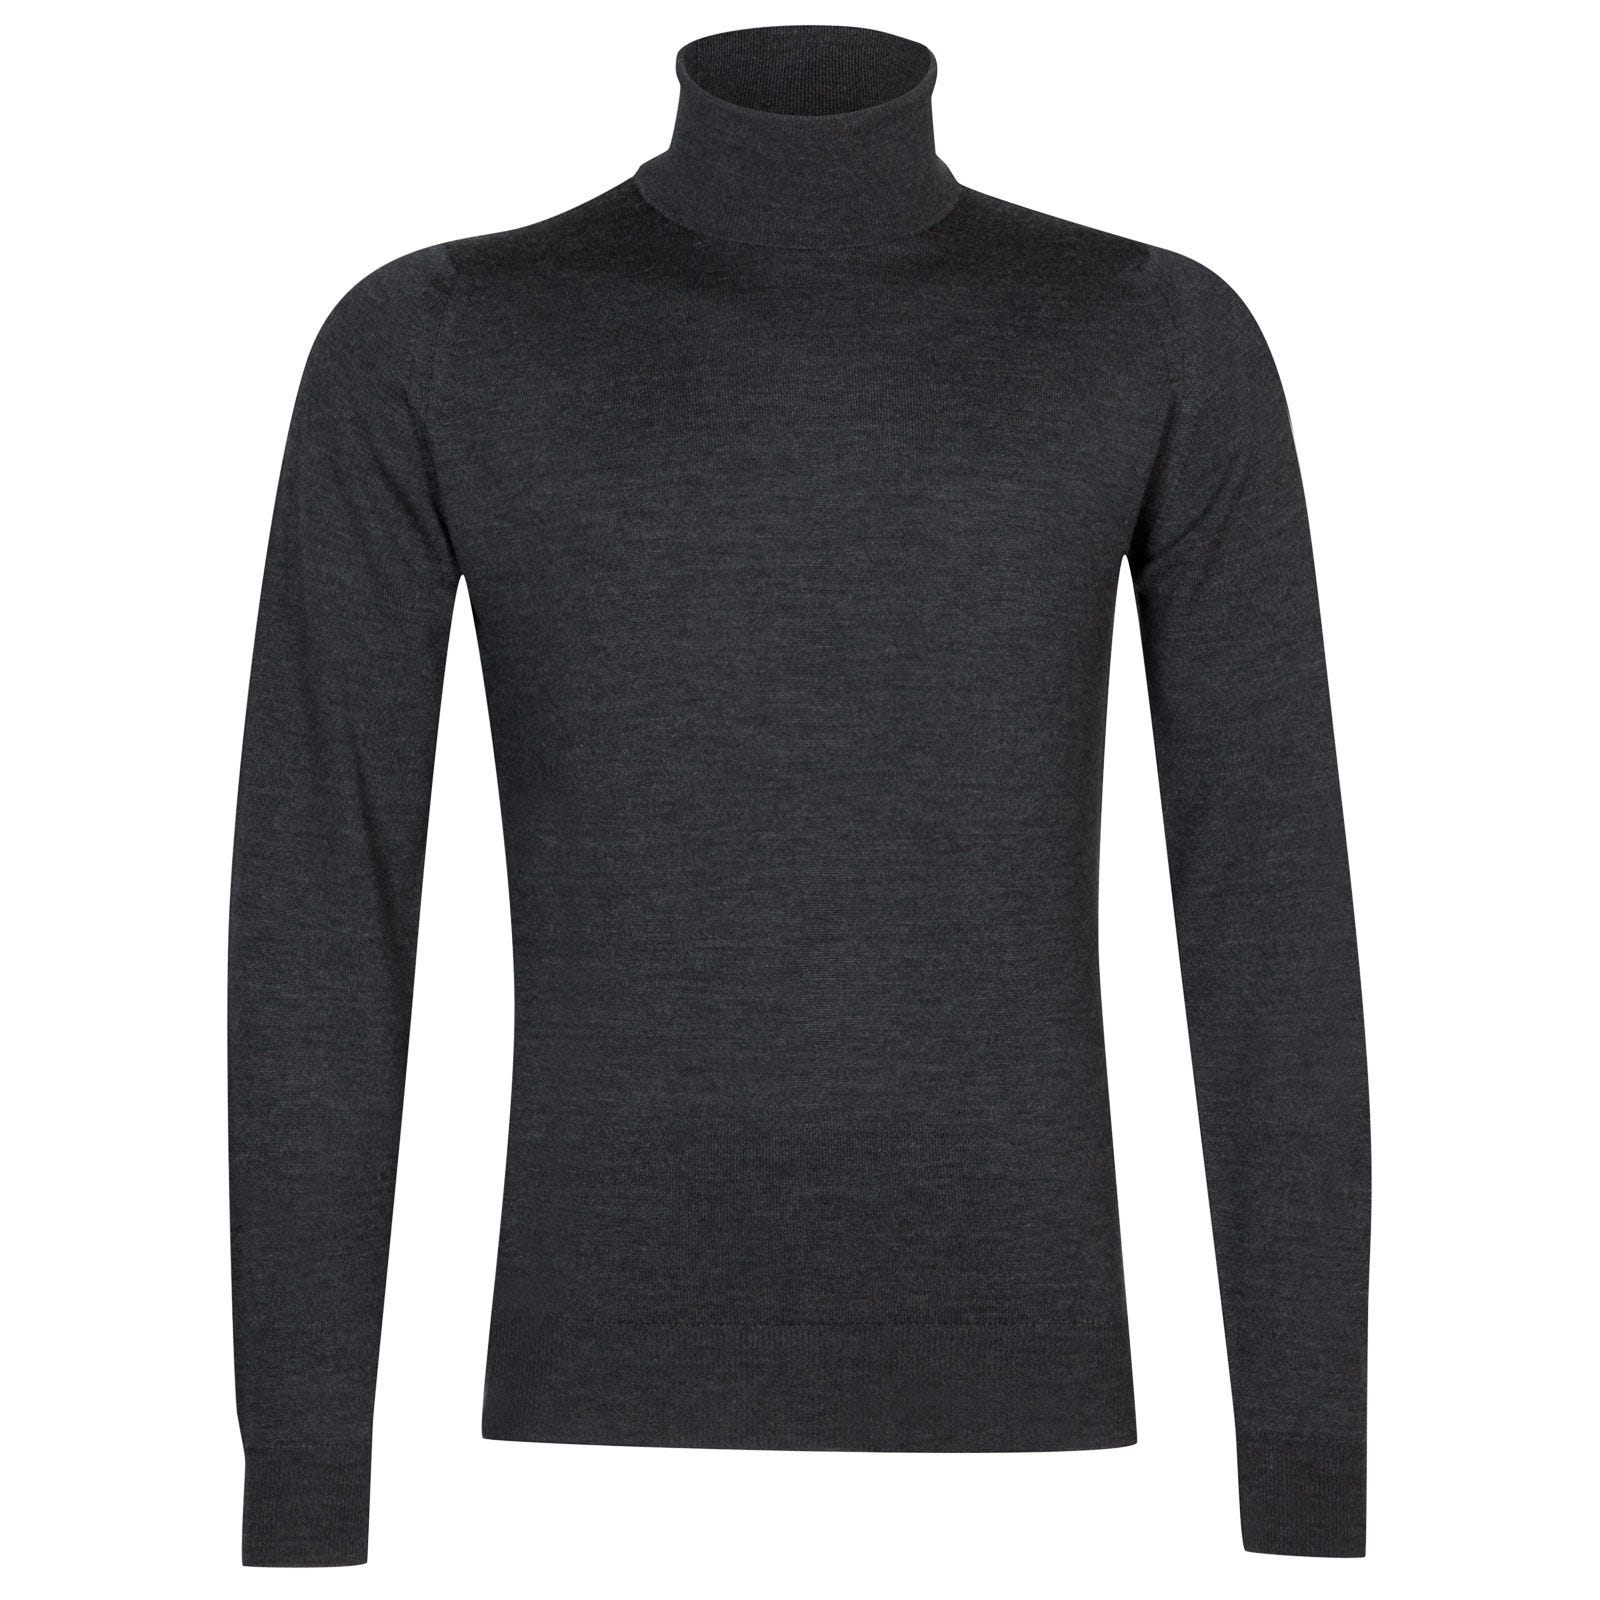 John Smedley connell Merino Wool Pullover in Charcoal-XXL